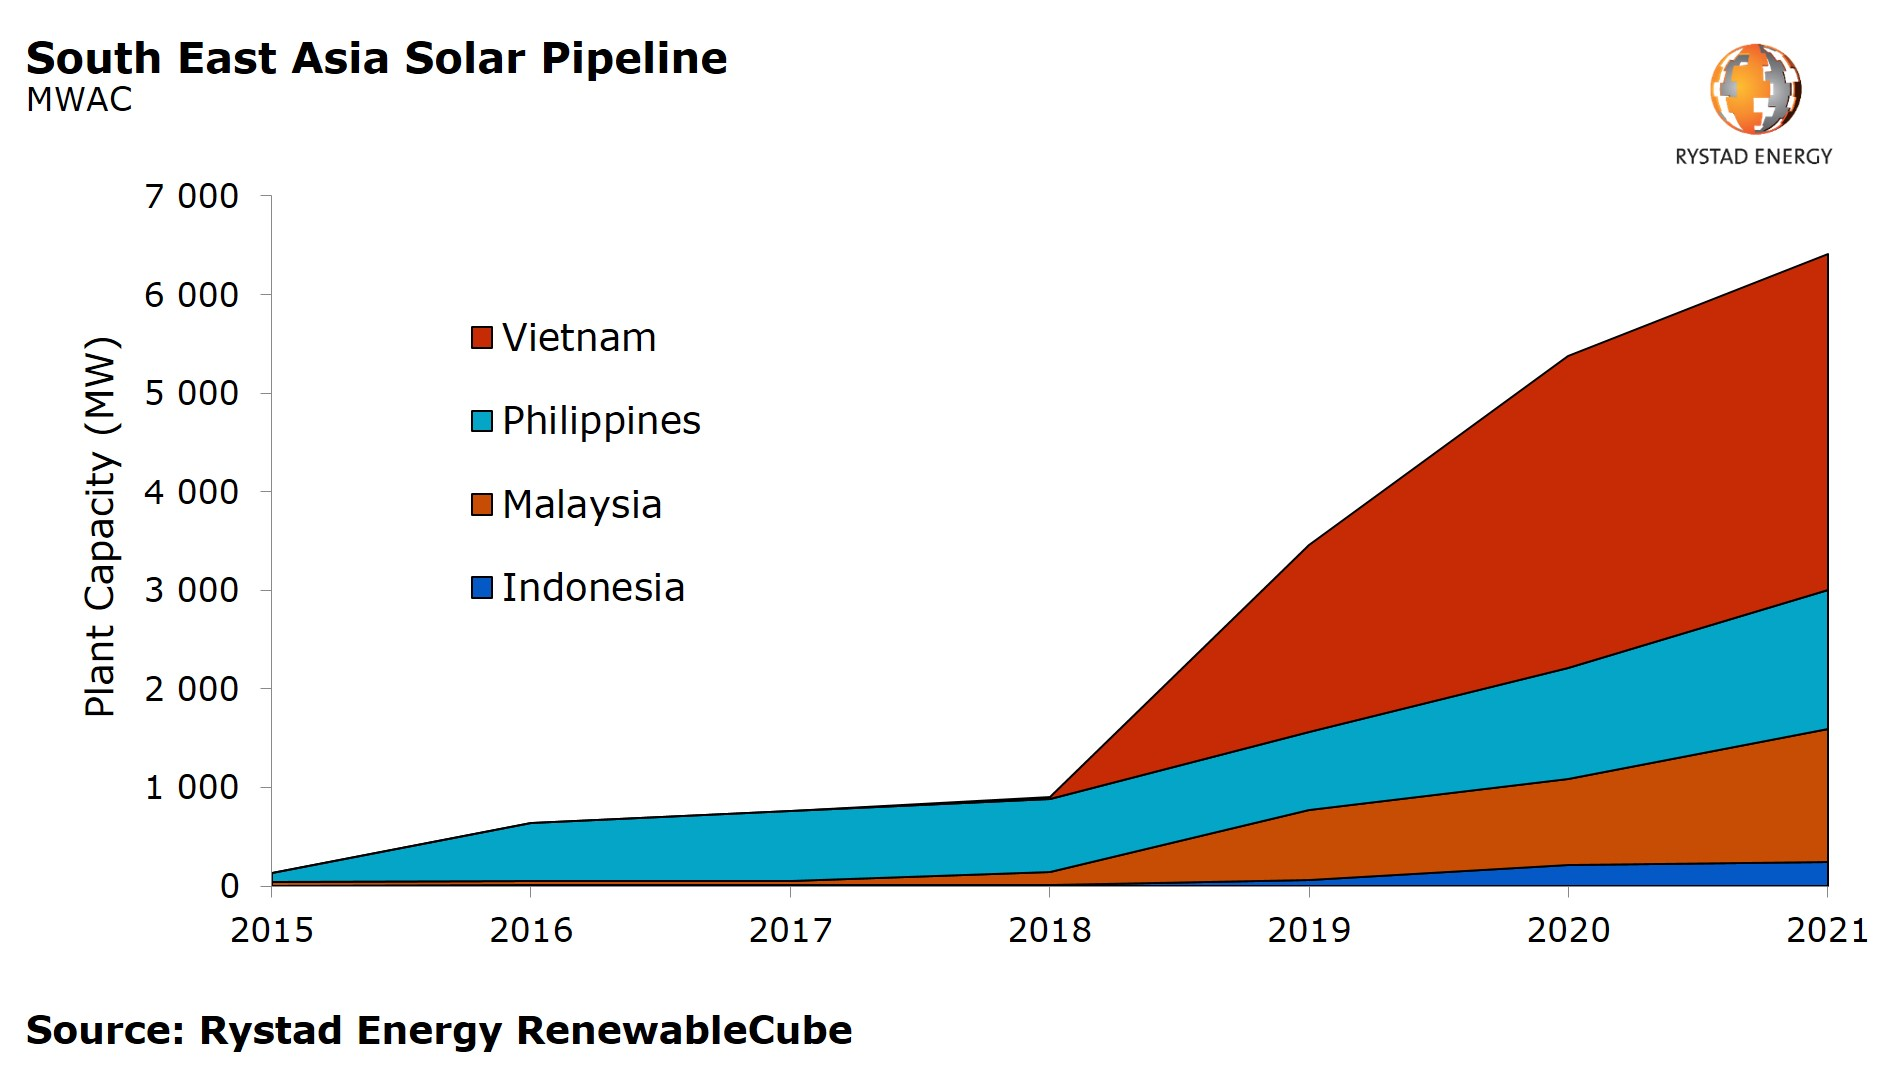 A graph showing the South East Asia Solar Pipeline in MWAC from 2015 to 2021. Source: Rystad Energy RenewableCube